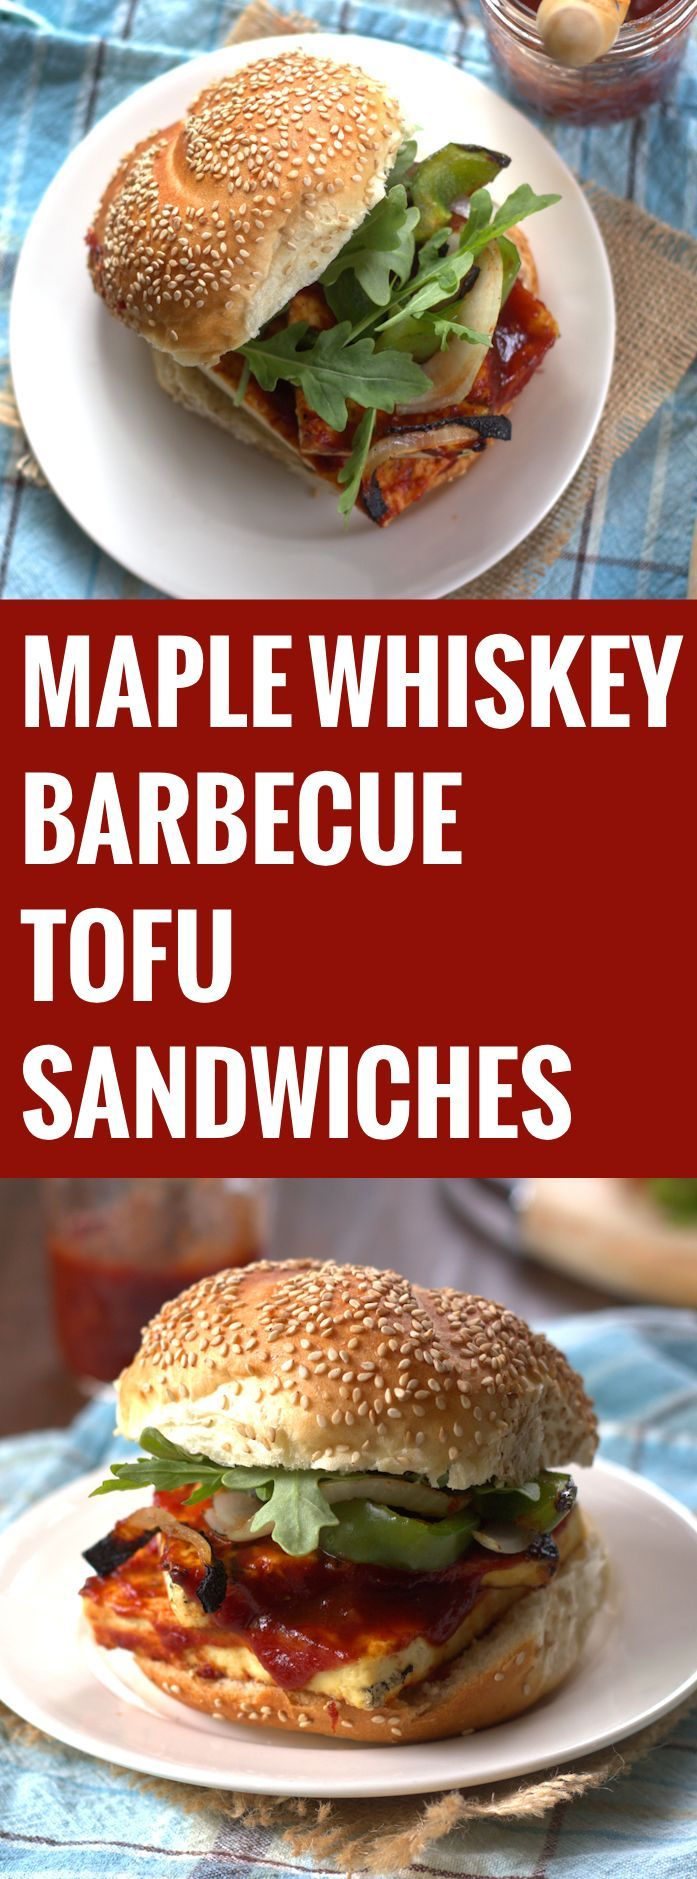 Maple Whiskey Barbecue Tofu Sandwiches